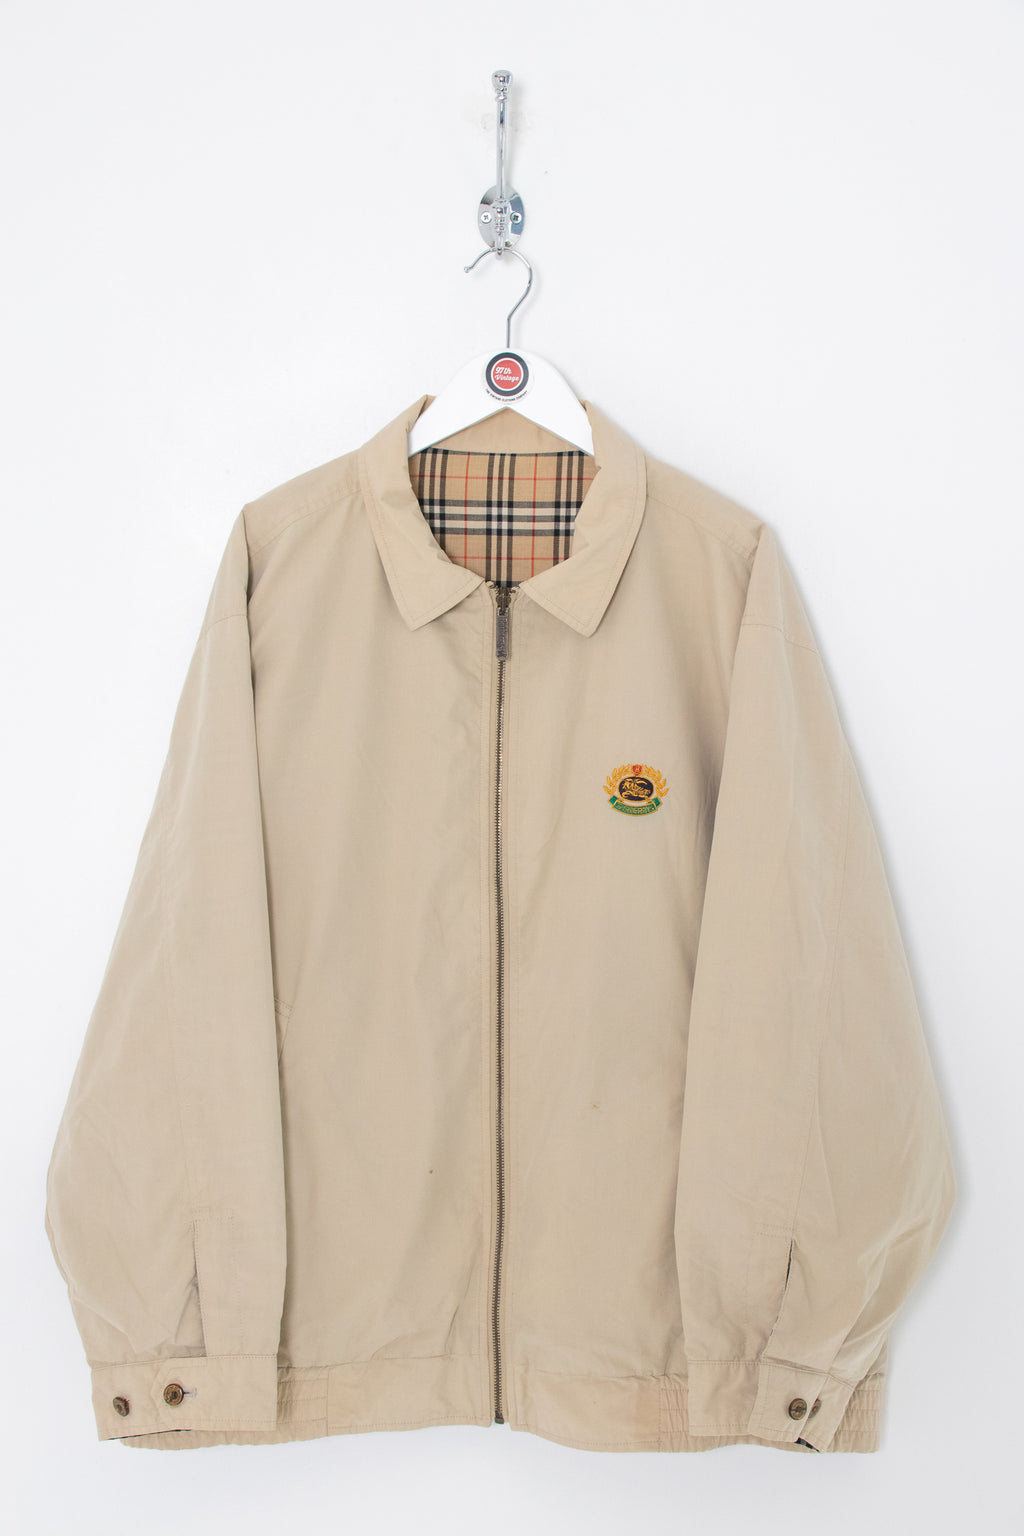 Burberry Reversible Jacket (M)